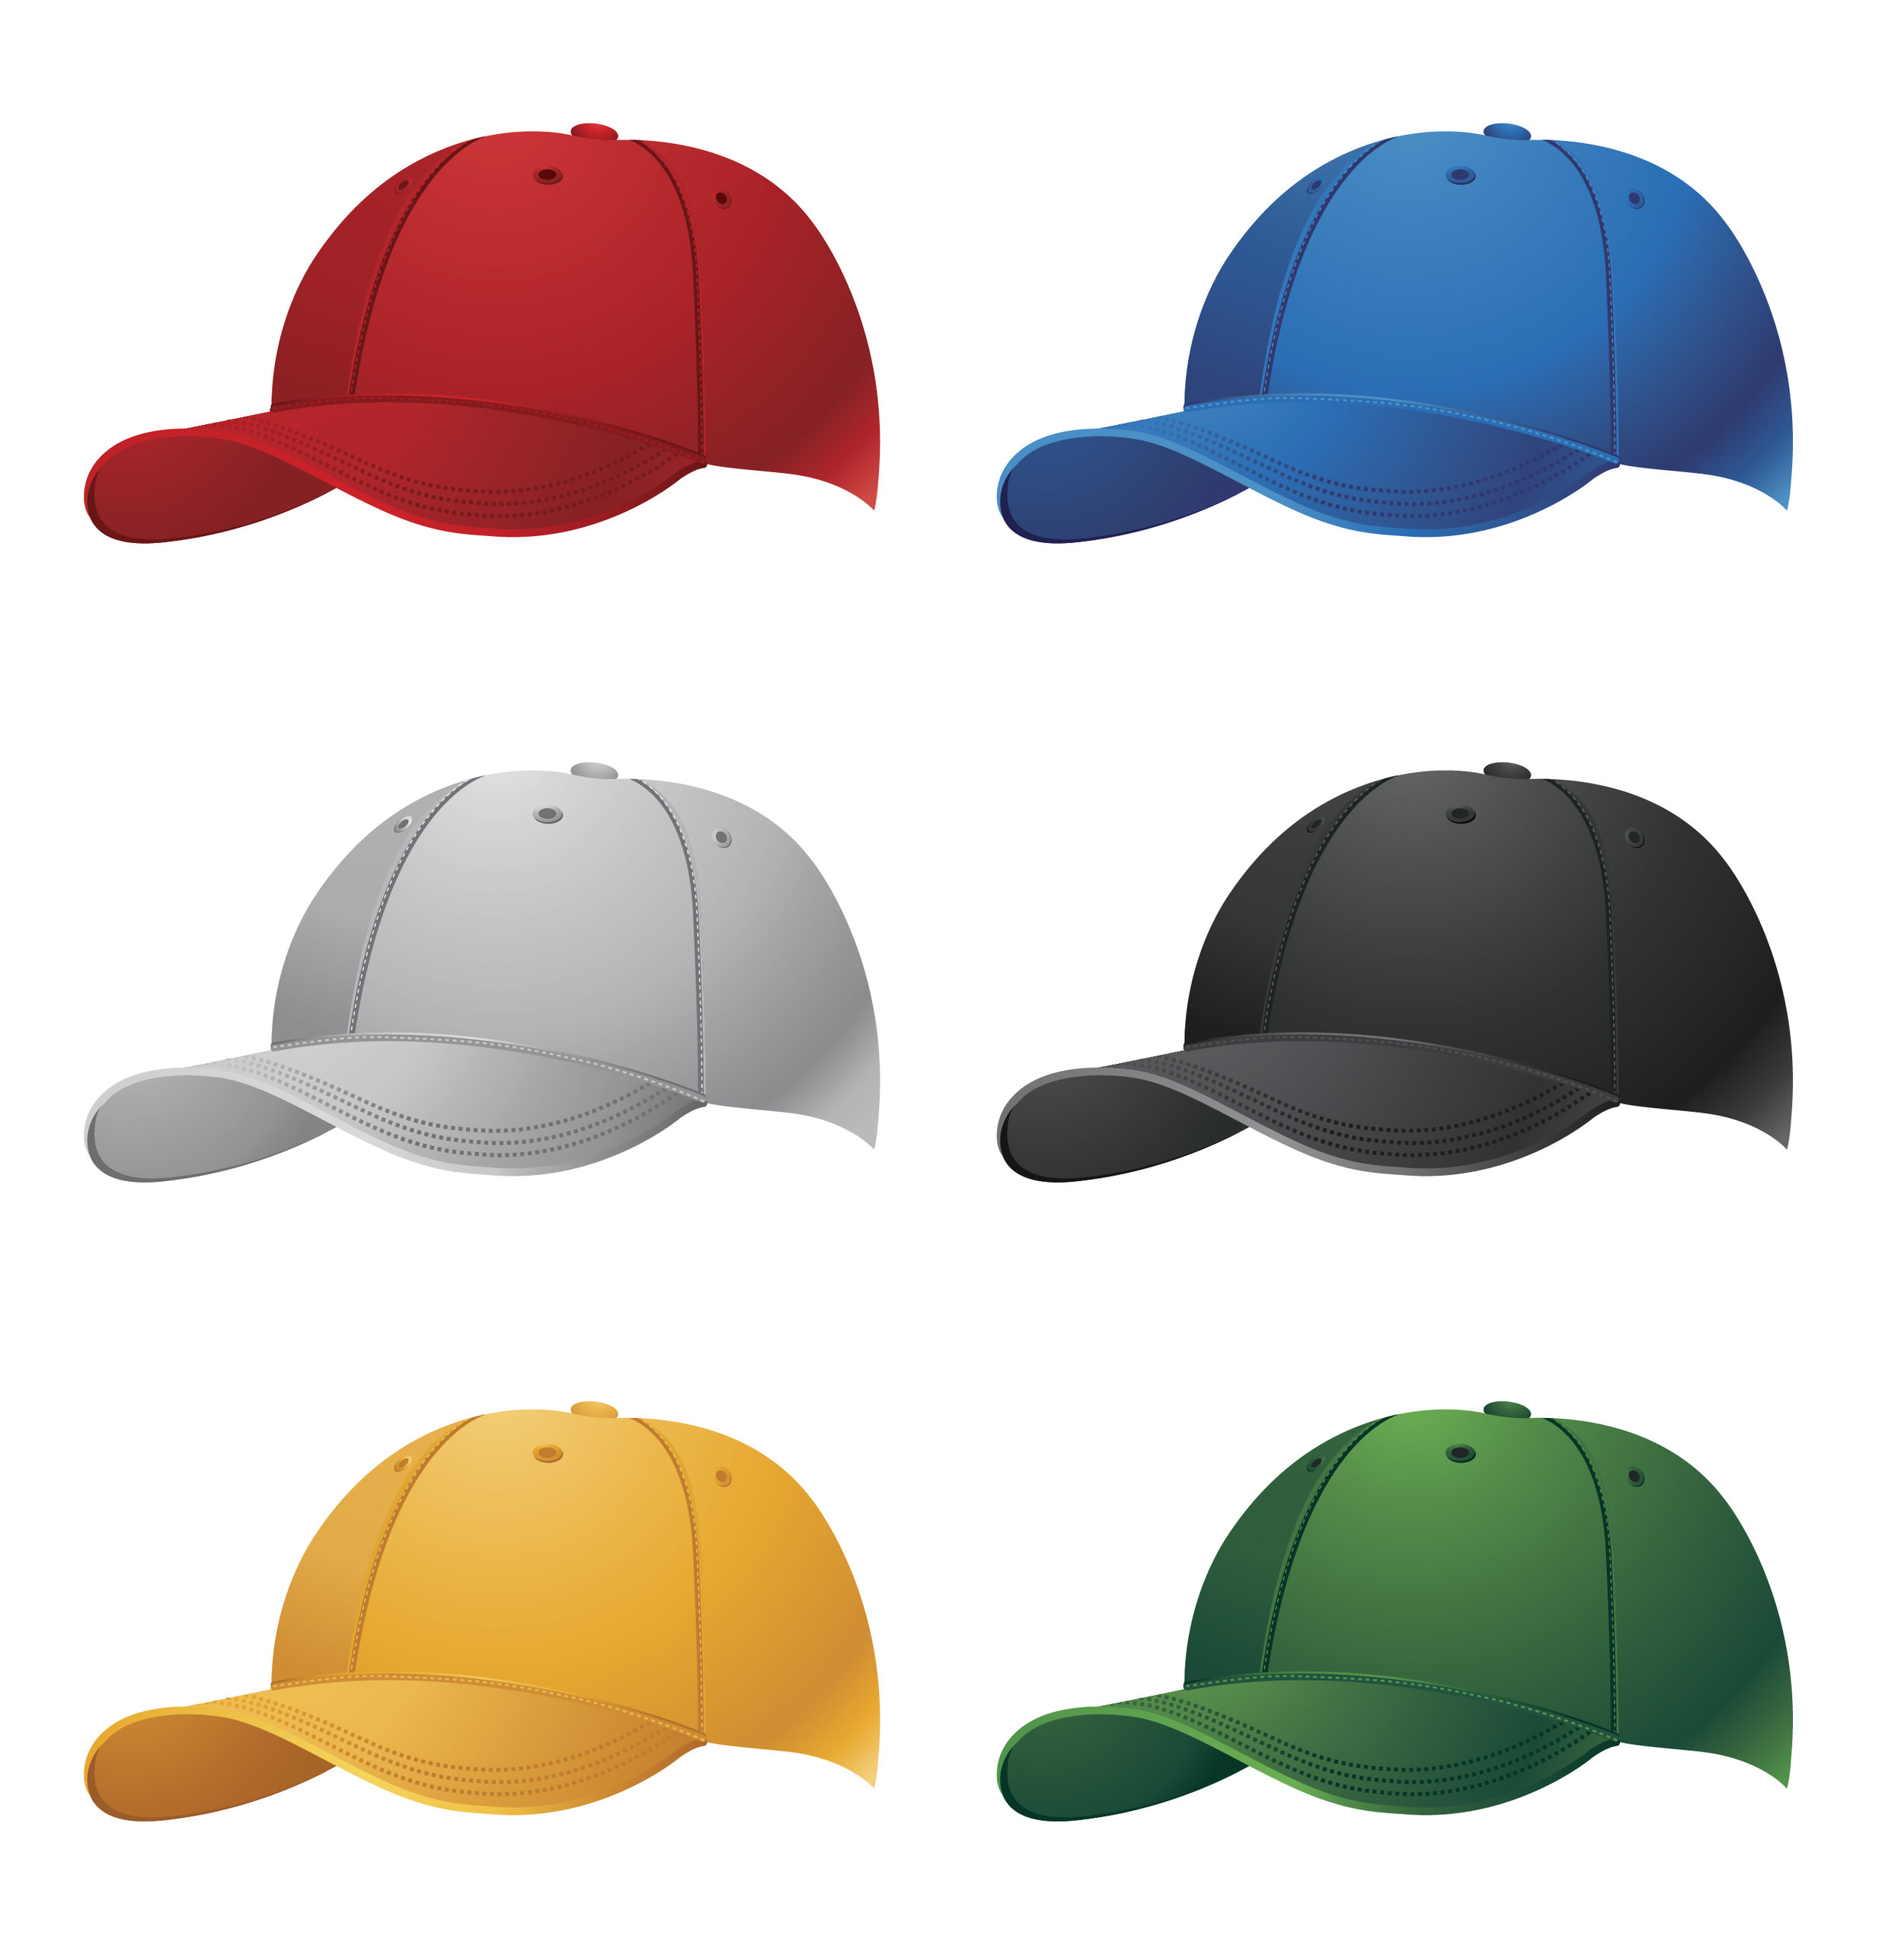 Use six hats to solve a problem